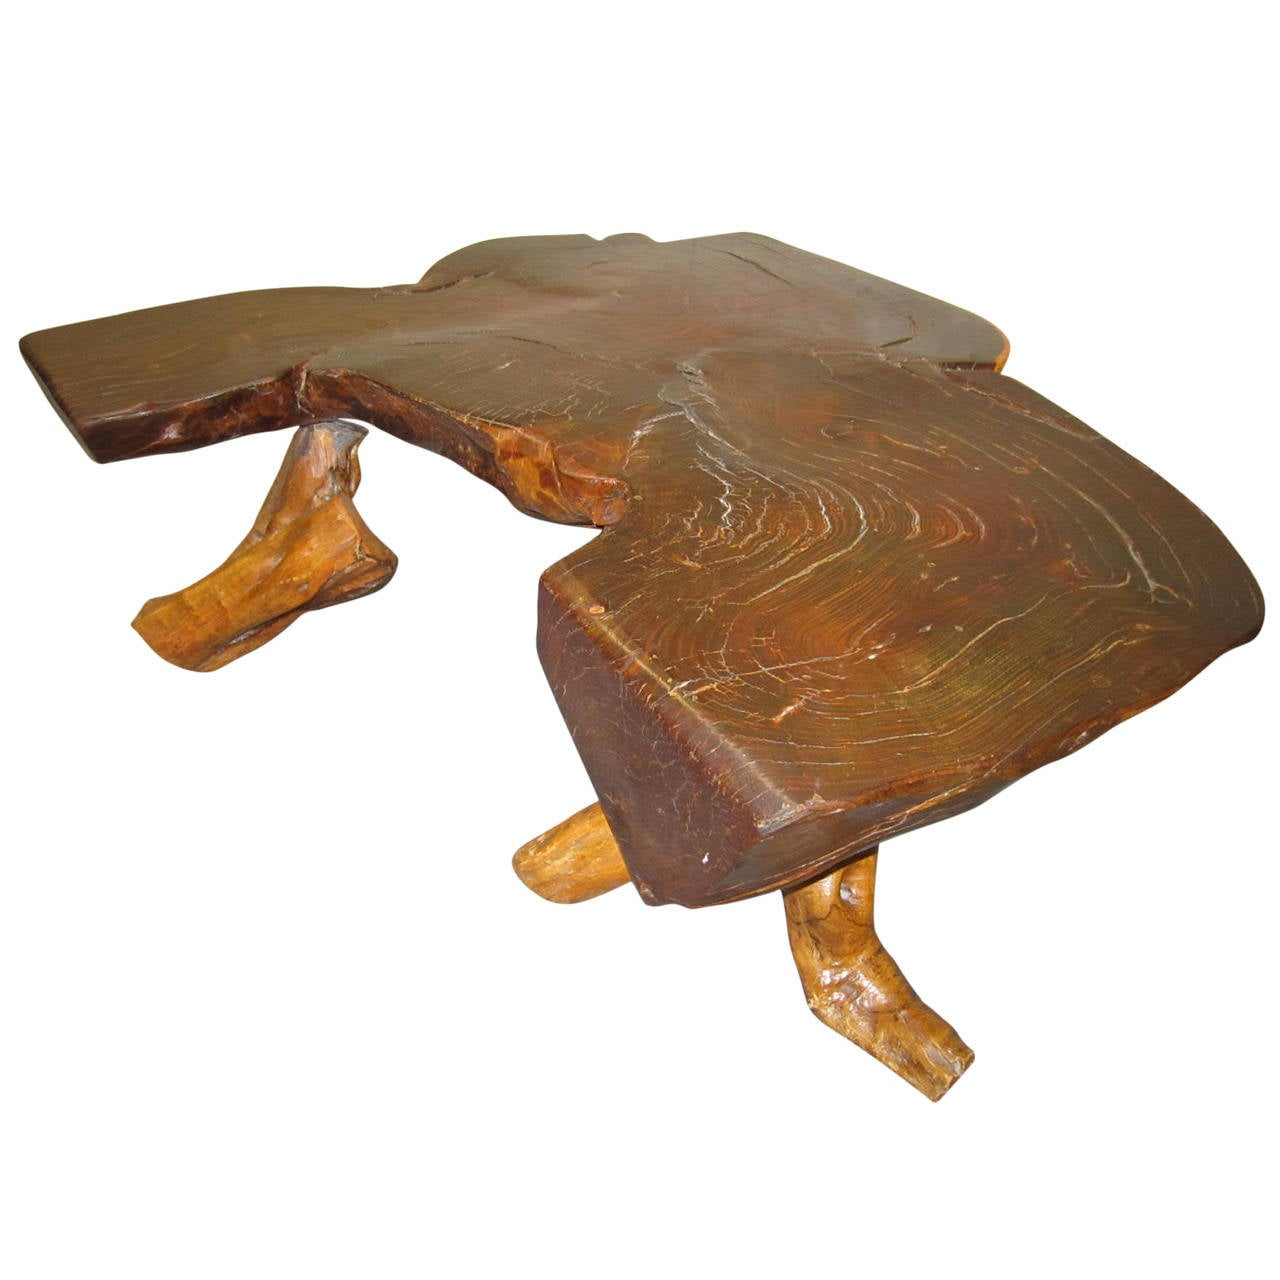 Redwood Coffee Table: Organic Redwood Free Edge Coffee Table Mid-century Modern